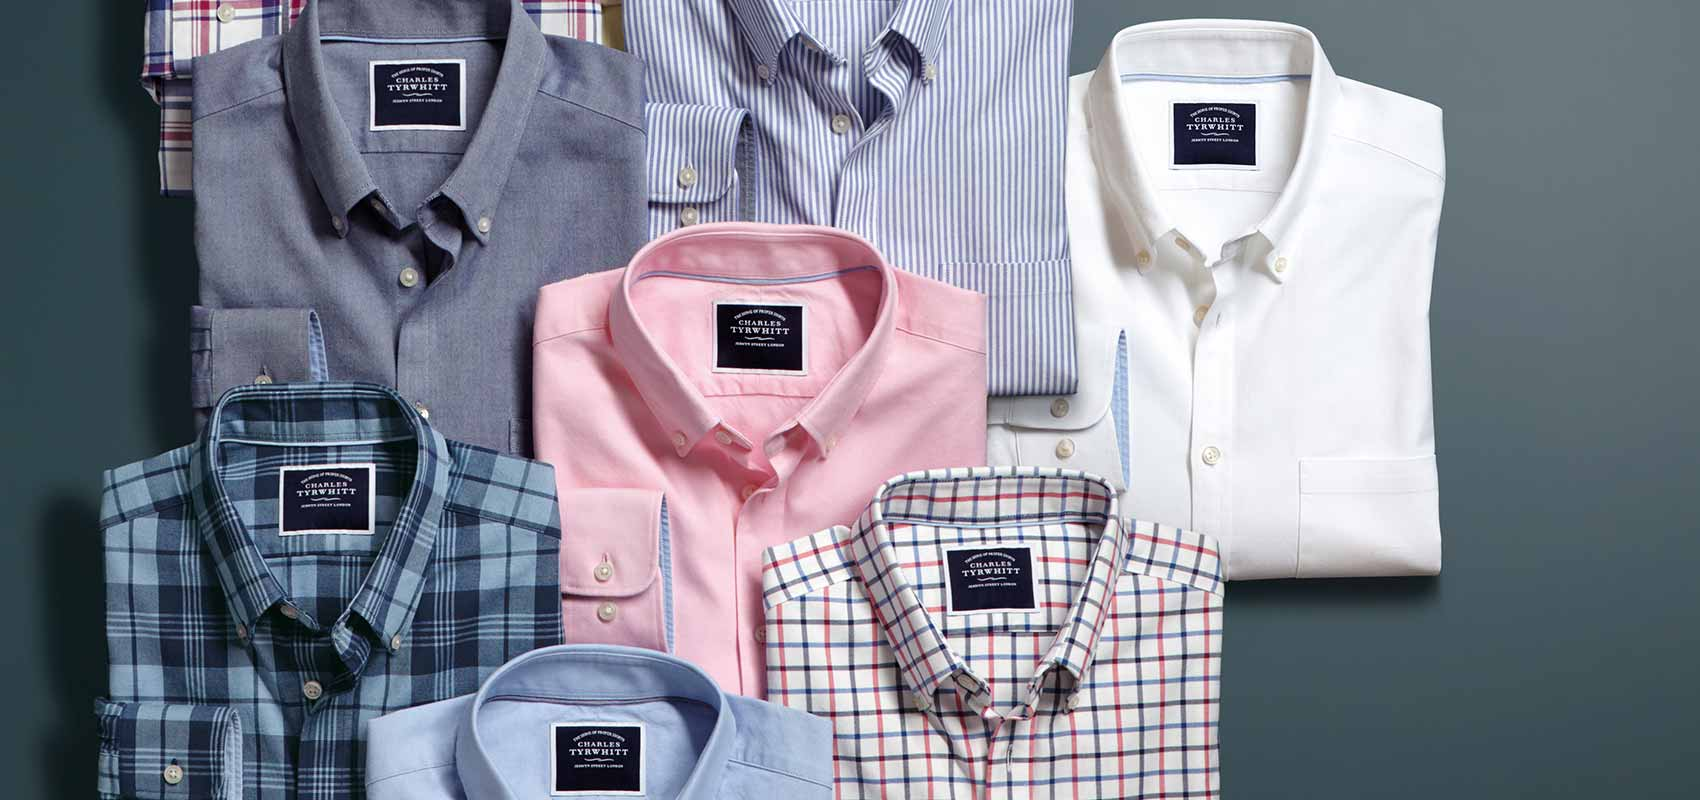 Washed Oxford casual shirts